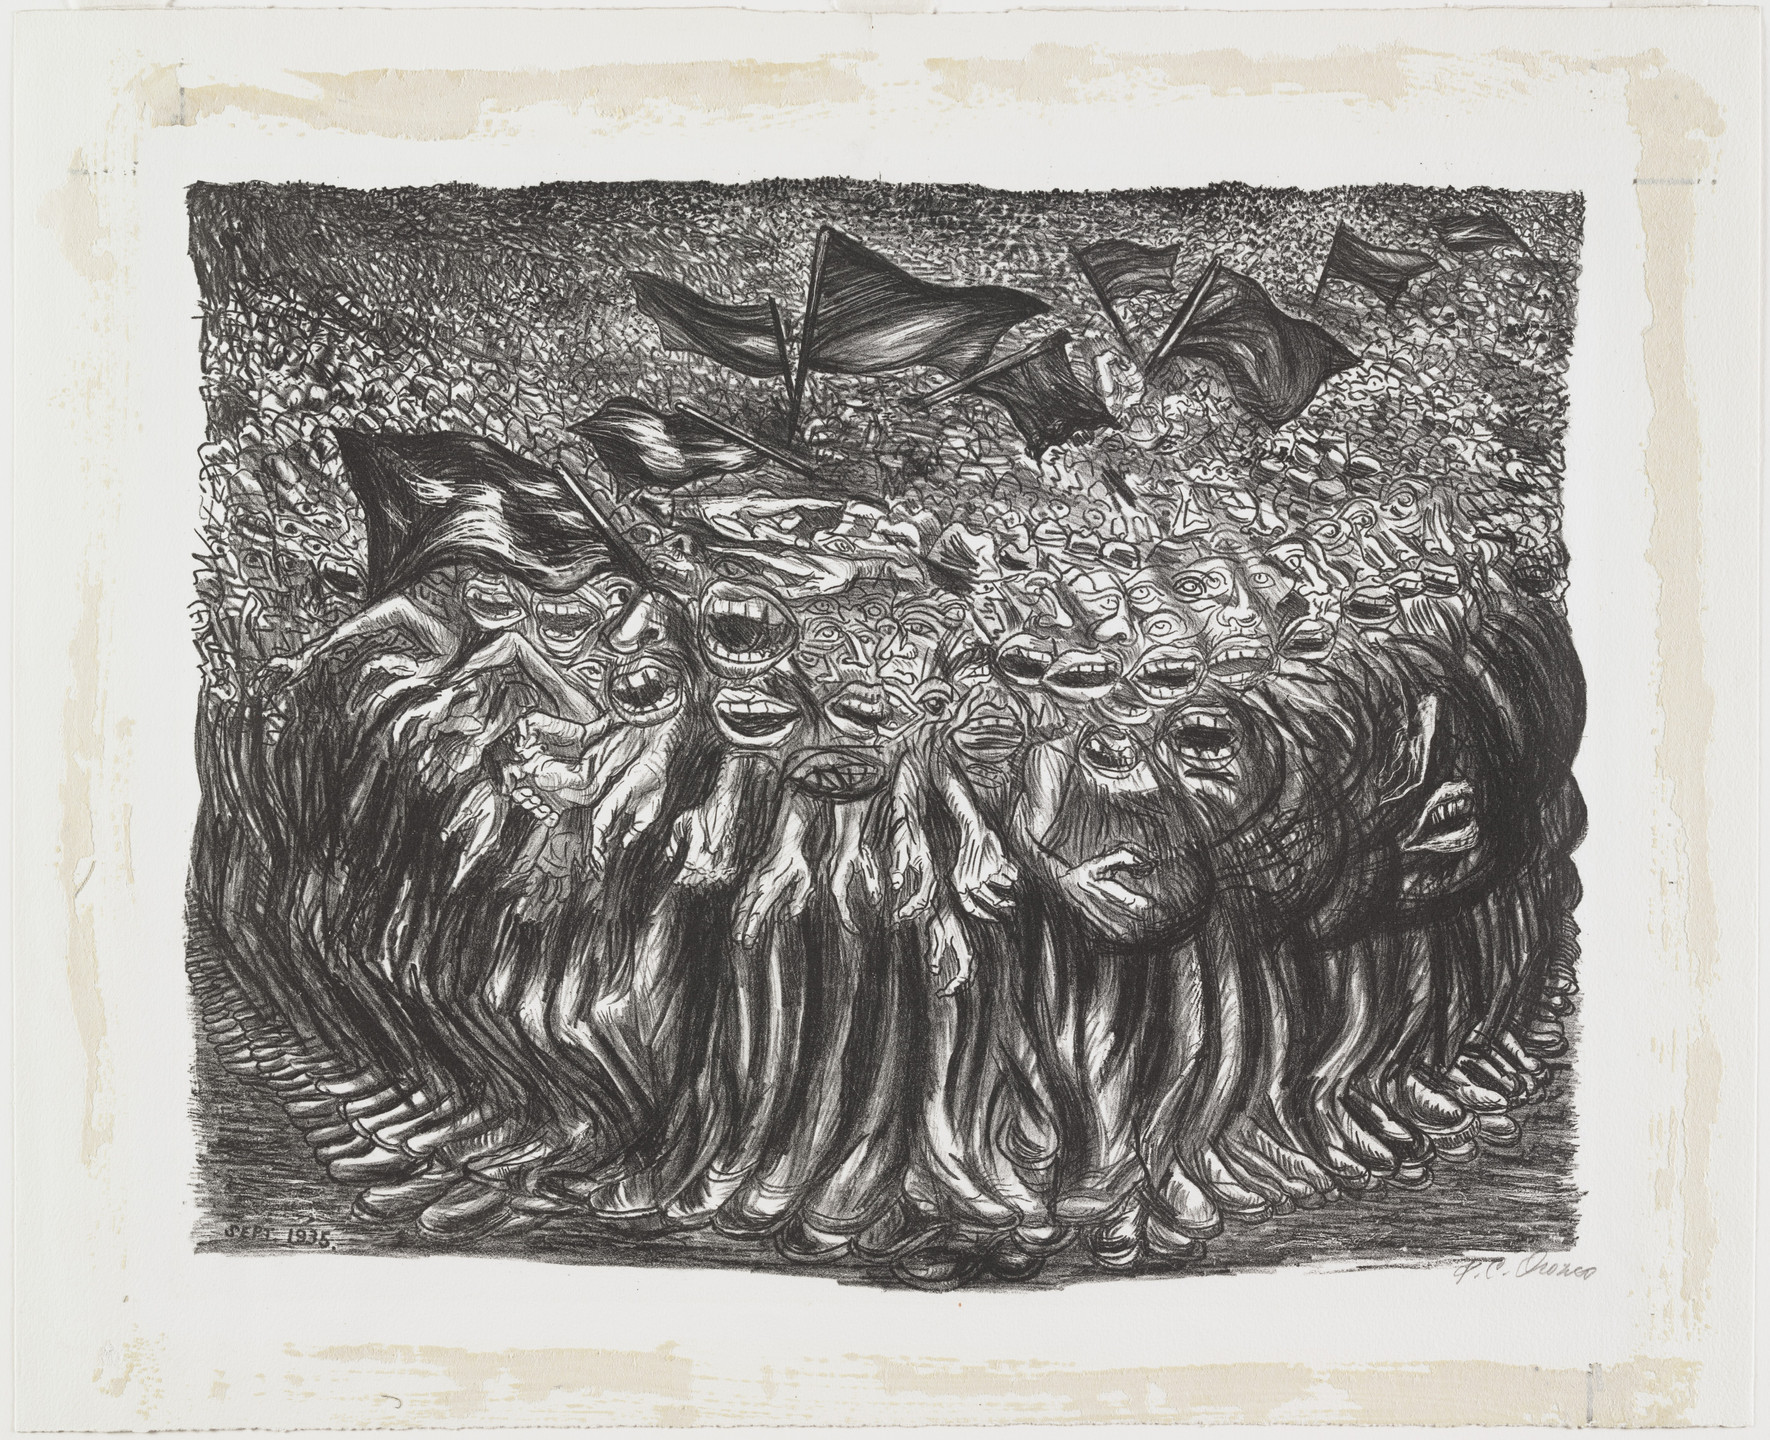 José Clemente Orozco. The Masses. 1935